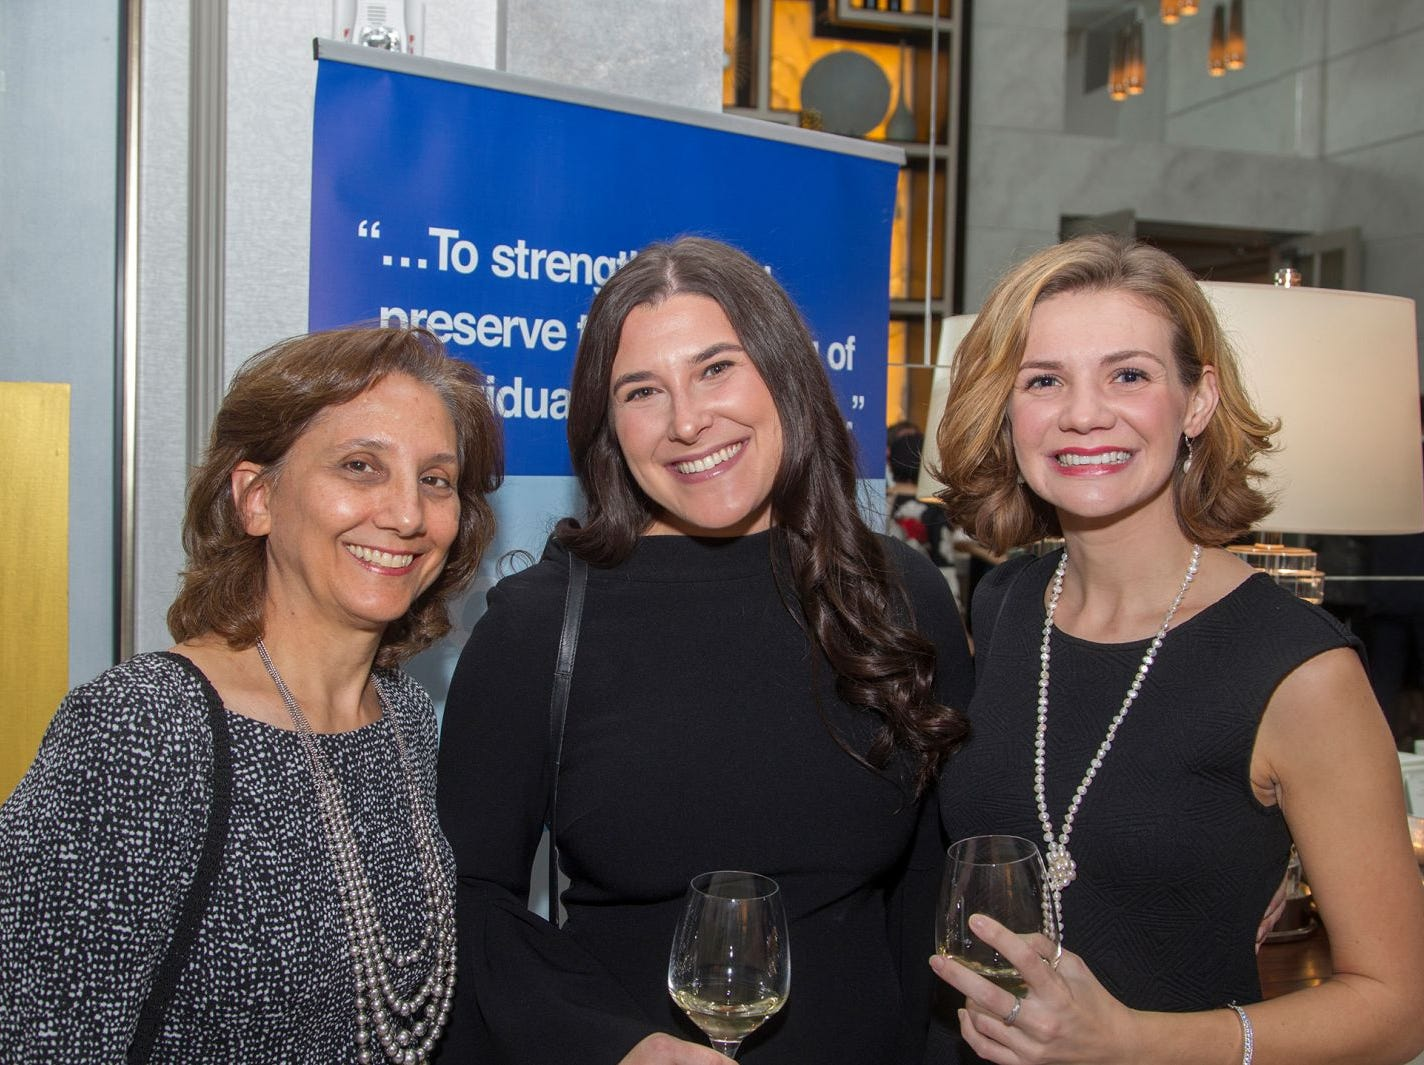 Alice Blass,  Julie Schwartz, Corinne Stackpole. Jewish Family & Children's Services of Northern New Jersey held its annual gala at the Edgewood Country Club in River Vale. The evening honored Shira Feuerstein, Jayne Petak, and Alan Scharfstein for their leadership, support, and dedication. 11/18/2018